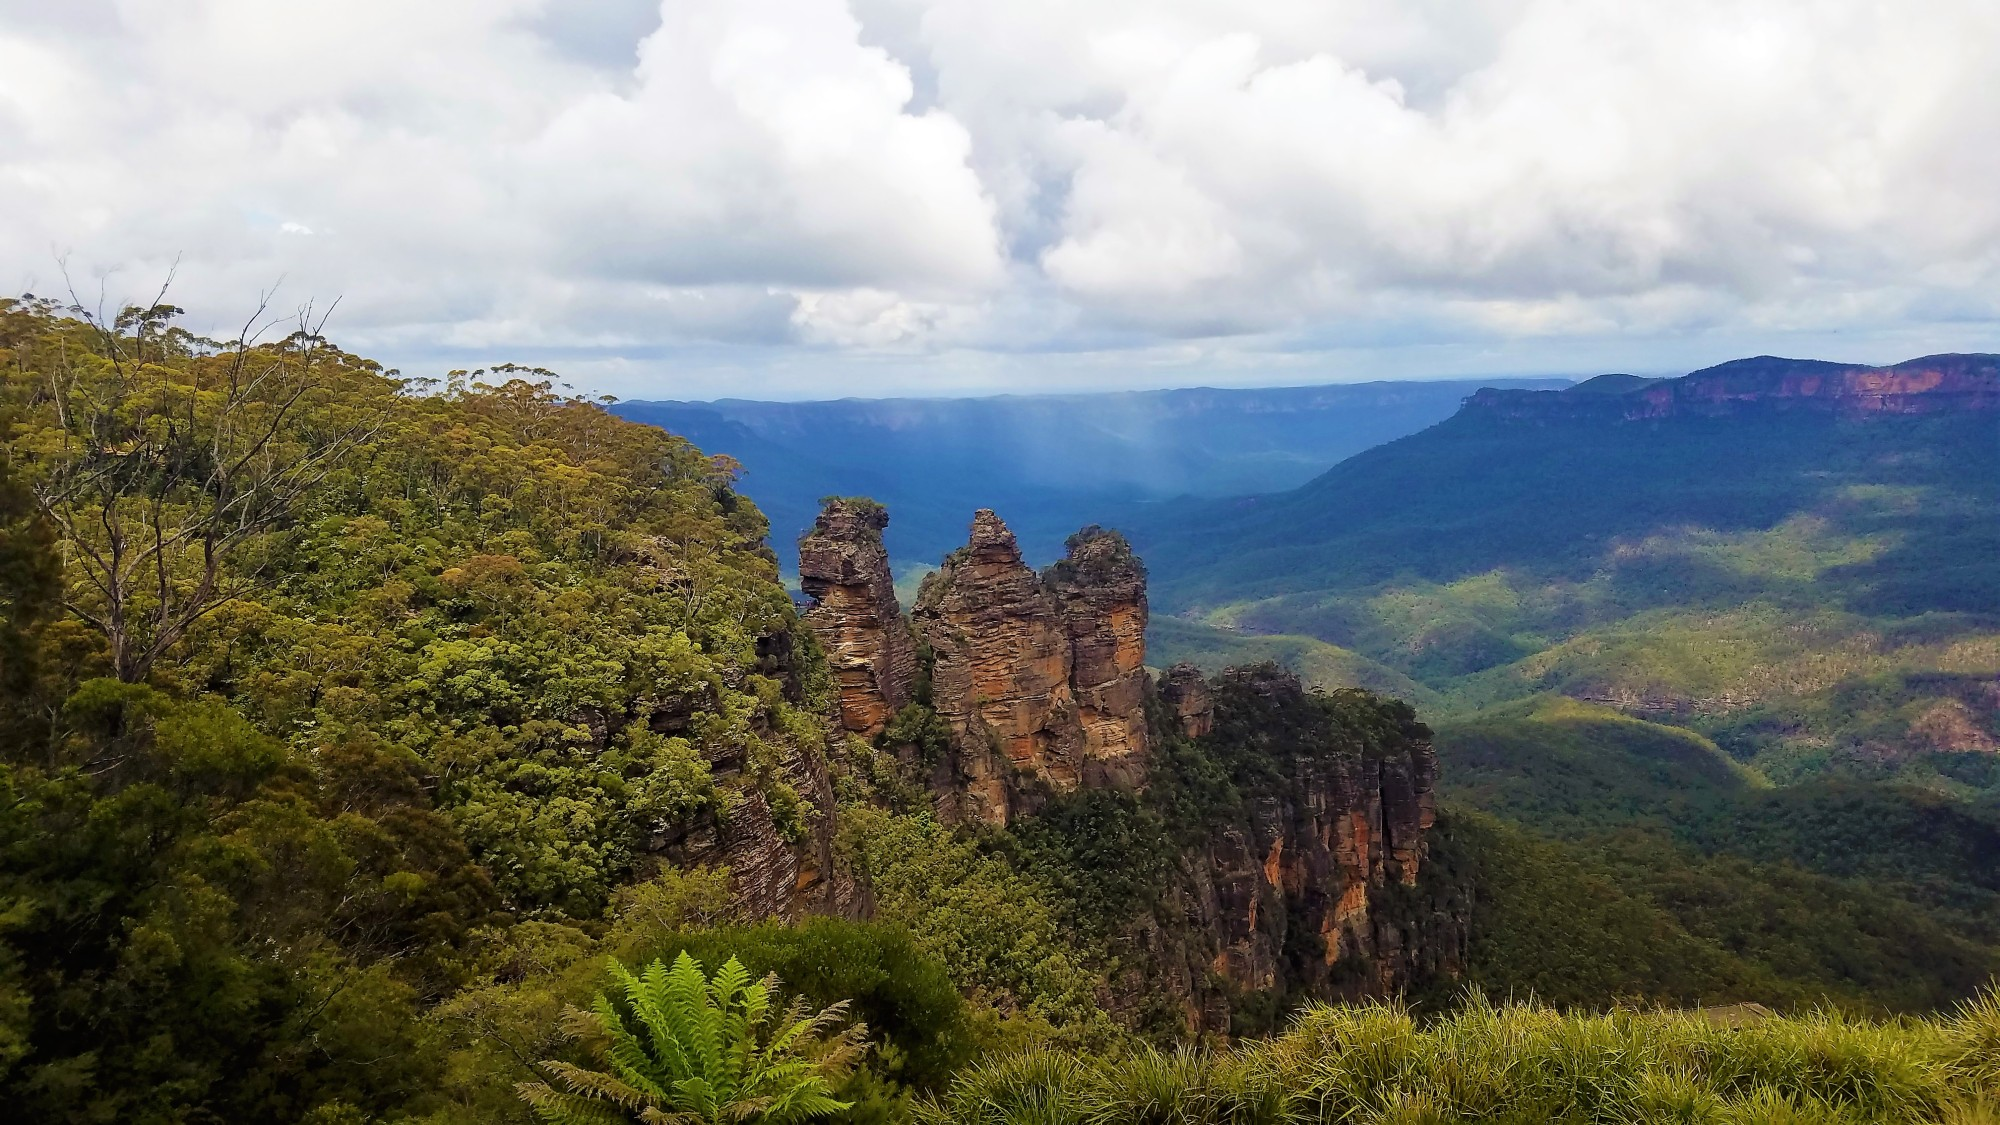 Australia Travel Guide | Three Sisters | Echo Point | Blue Mountains National Park